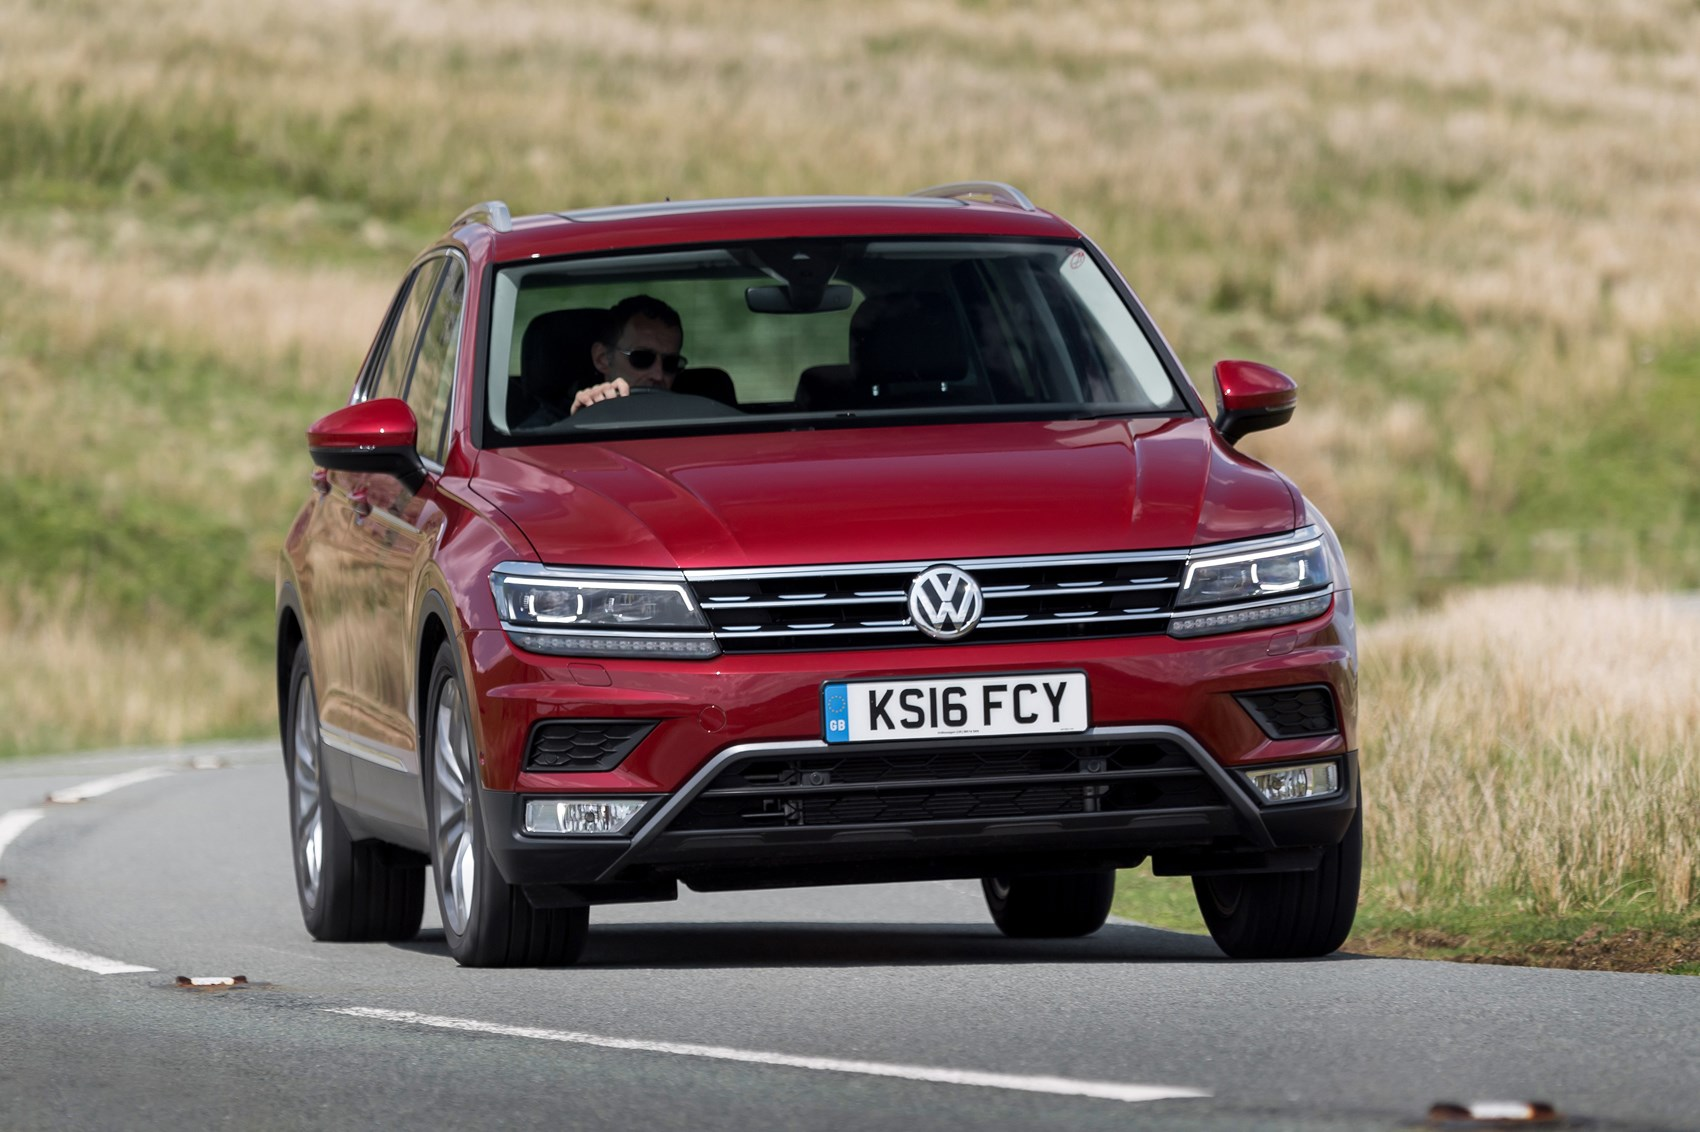 z01 Interesting Info About 2018 Vw Tiguan R Line with Mesmerizing Pictures Cars Review